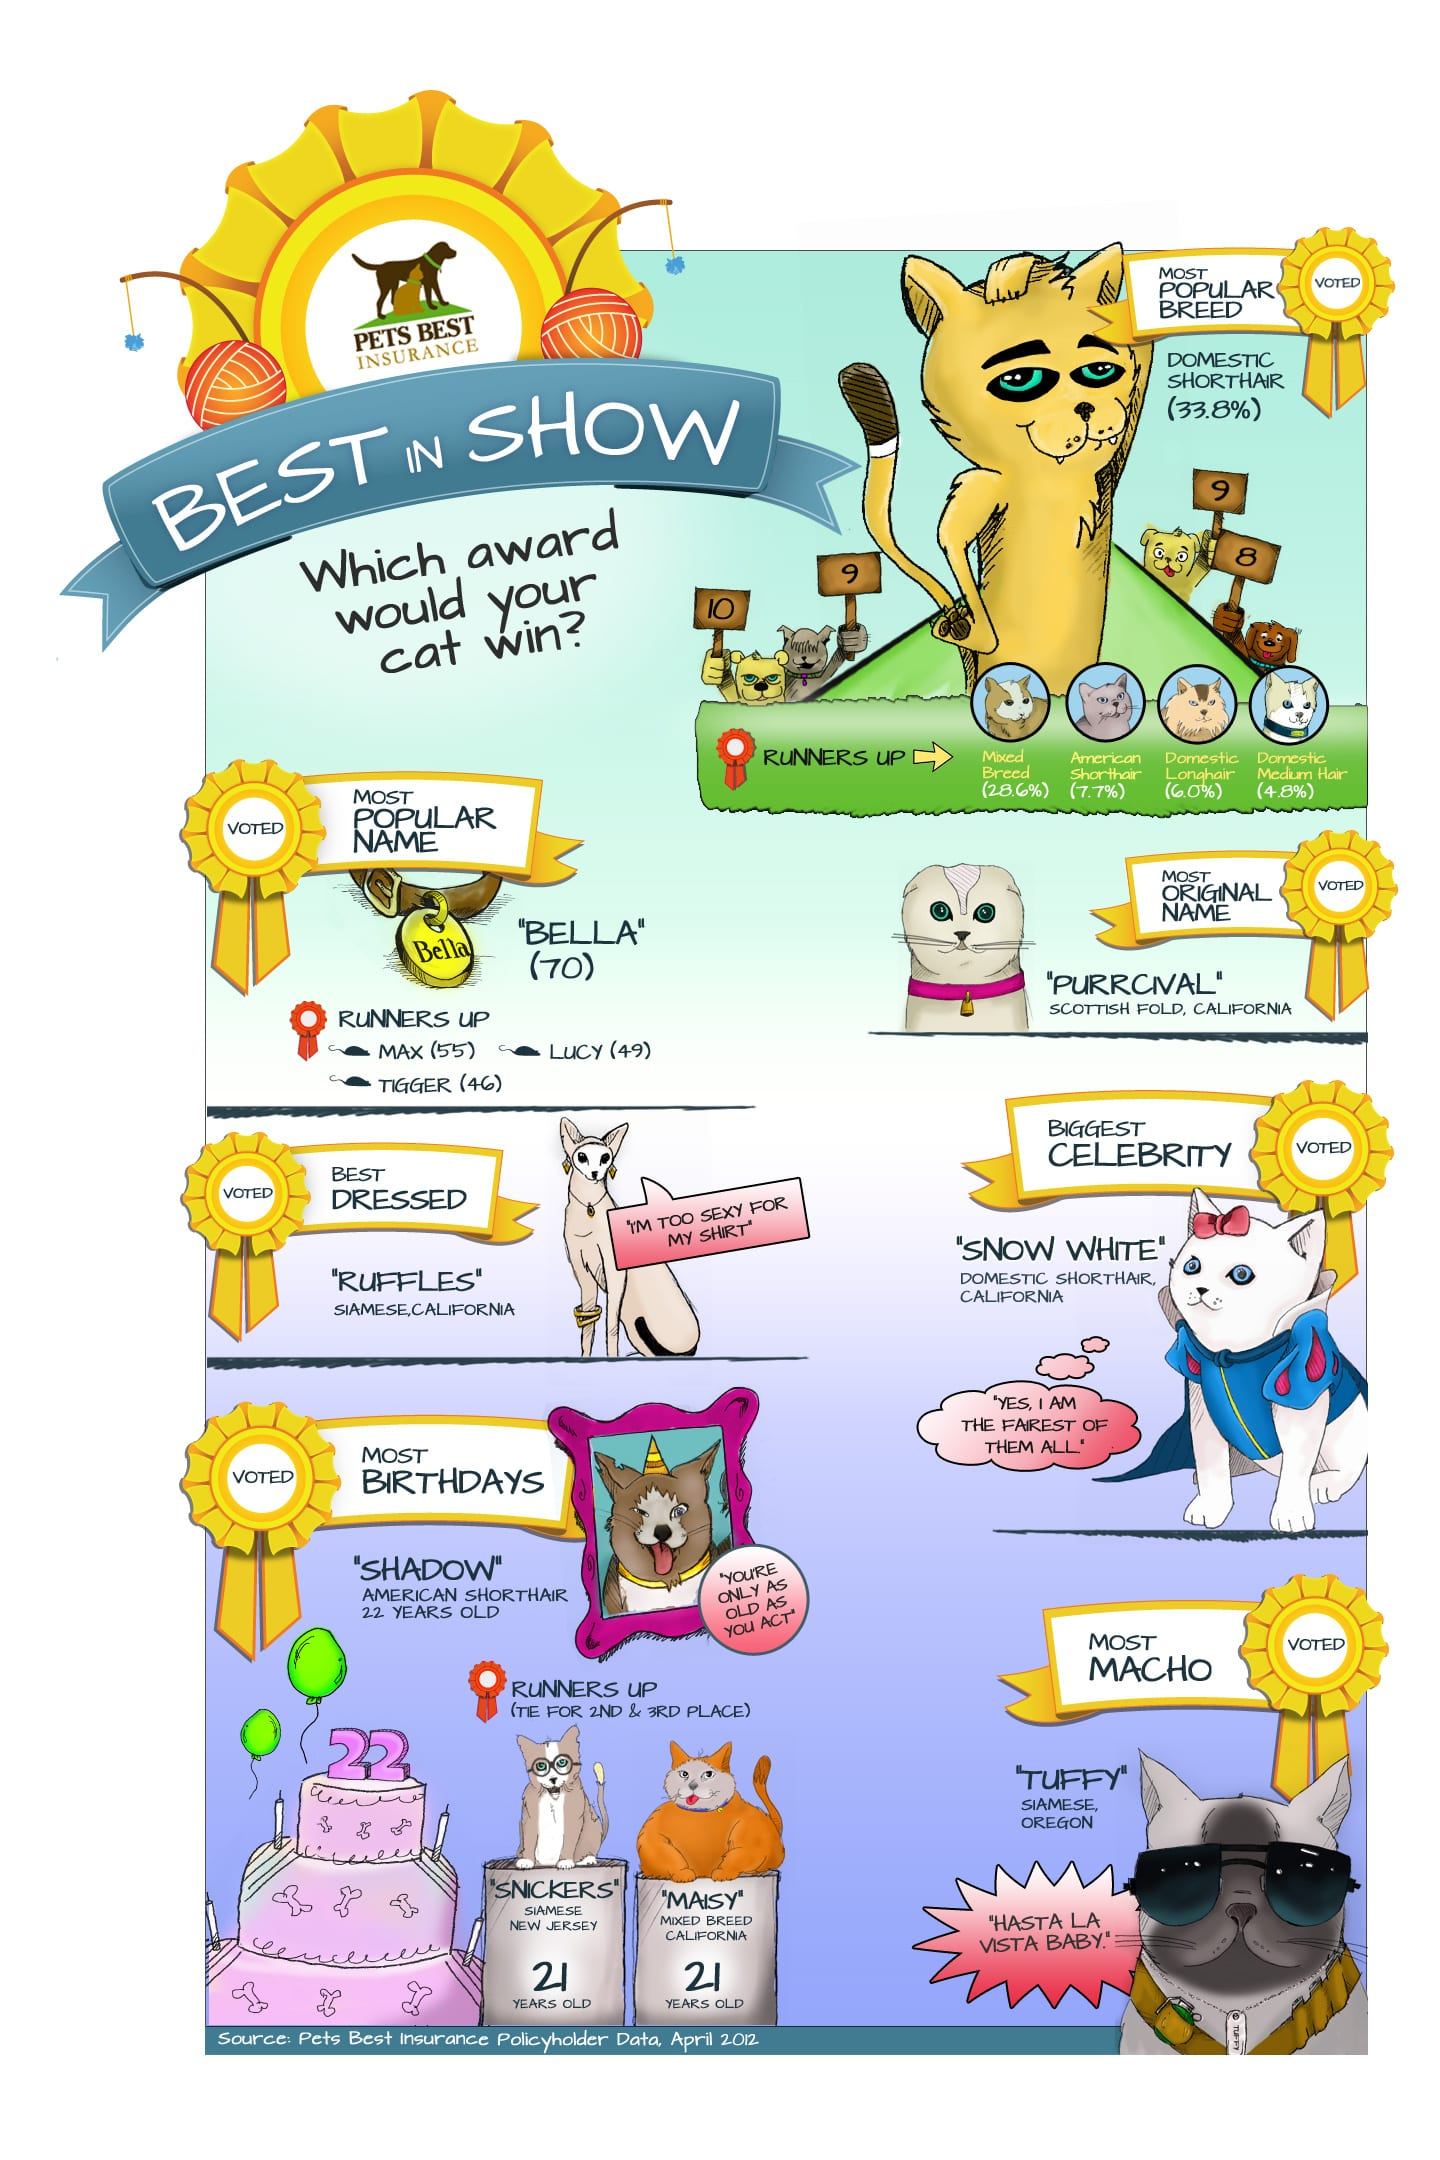 The Pets Best Insurance Cat Best In Show Awards